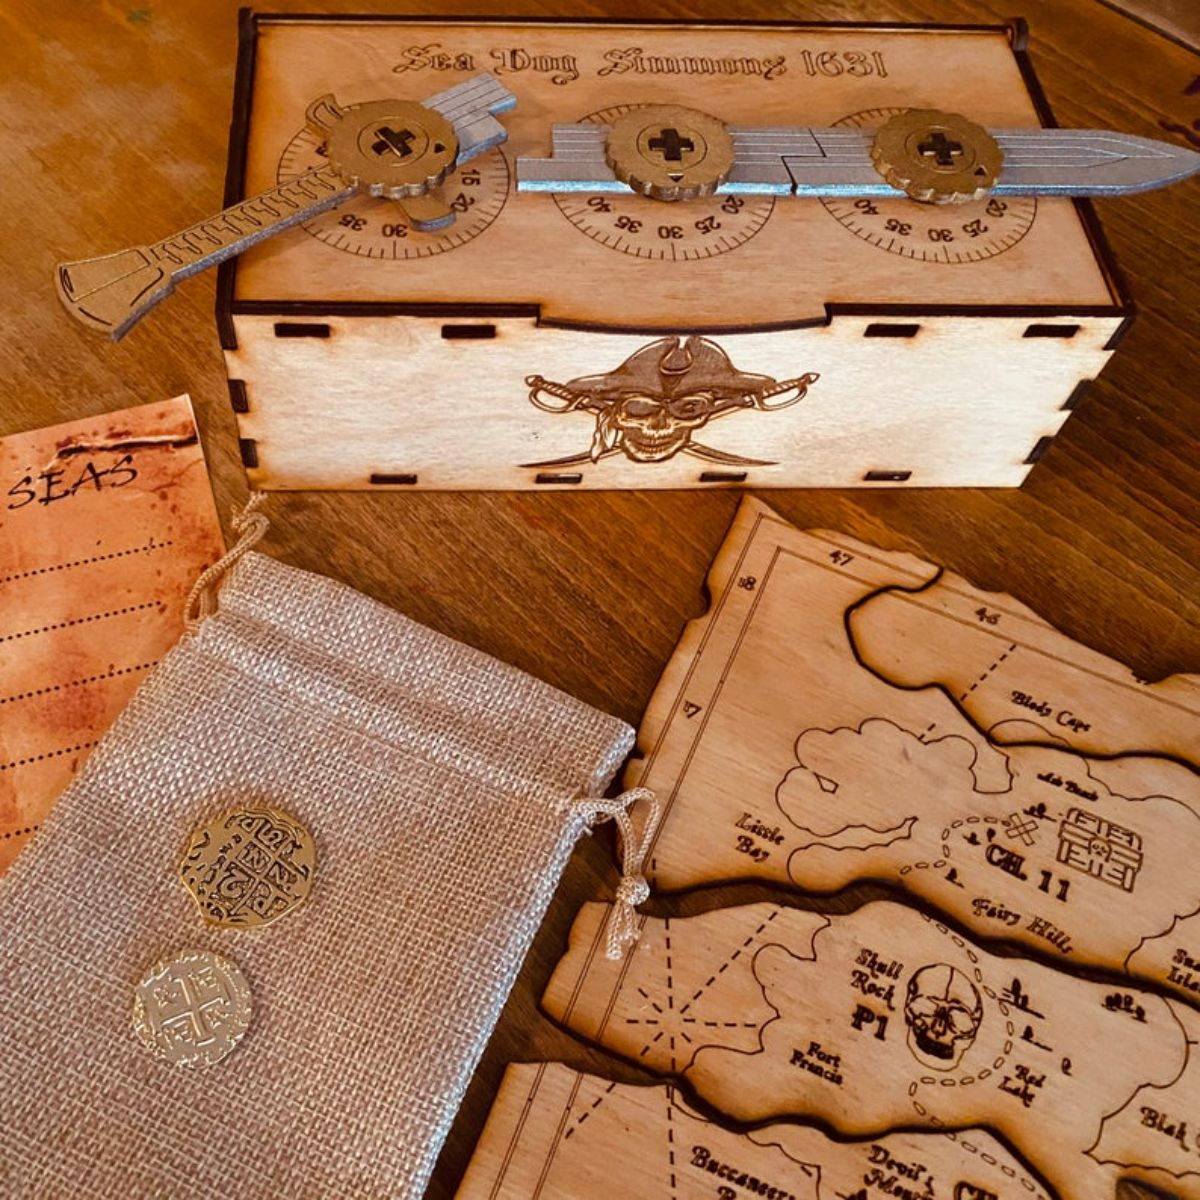 a wooden box decorated with pirate imagery and a knife lock on the top. Pirate treasure map in different pieces, and a hessian bag with 2 gold coins on top